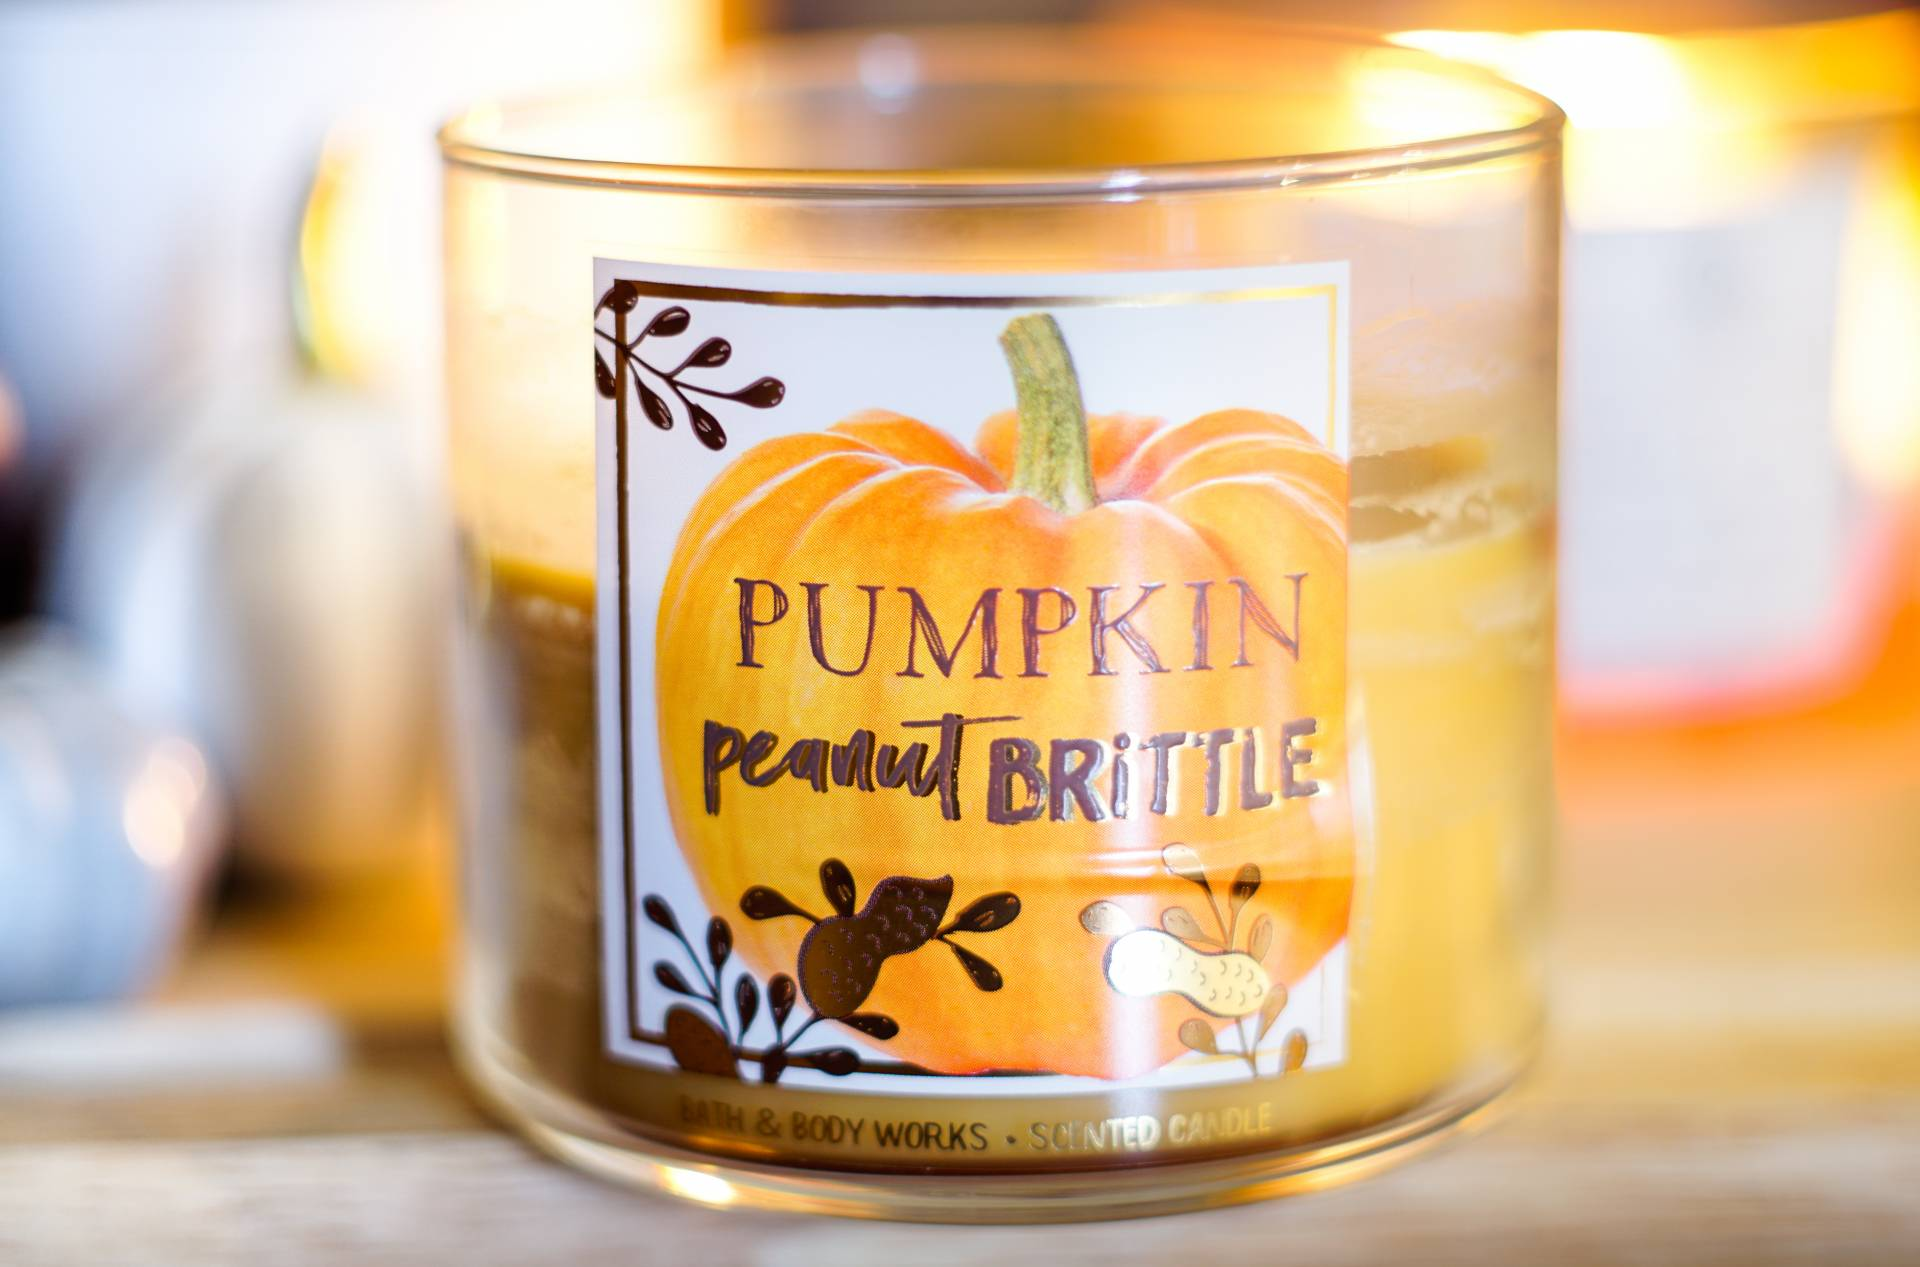 bath and body works bbw pumpkin peanut brittle candle review